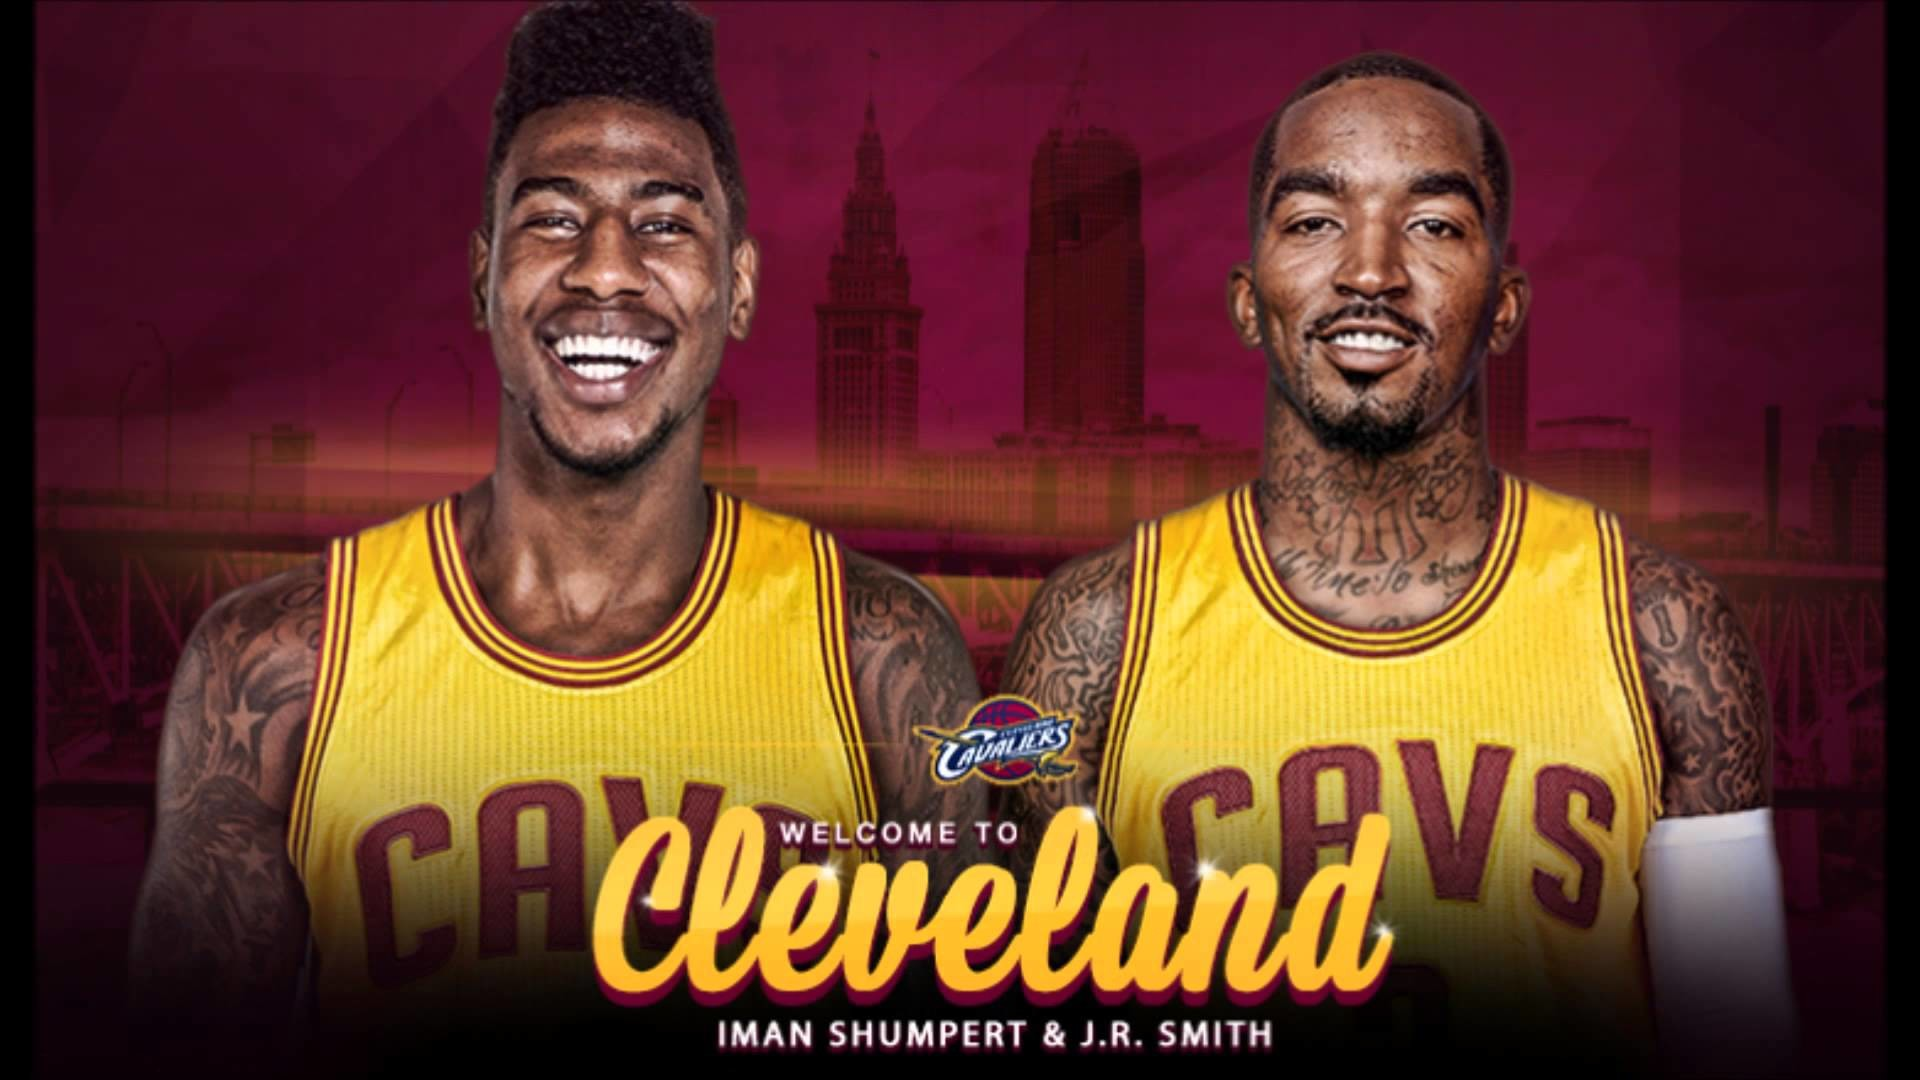 Jr Smith Wallpaper 79 images 1920x1080